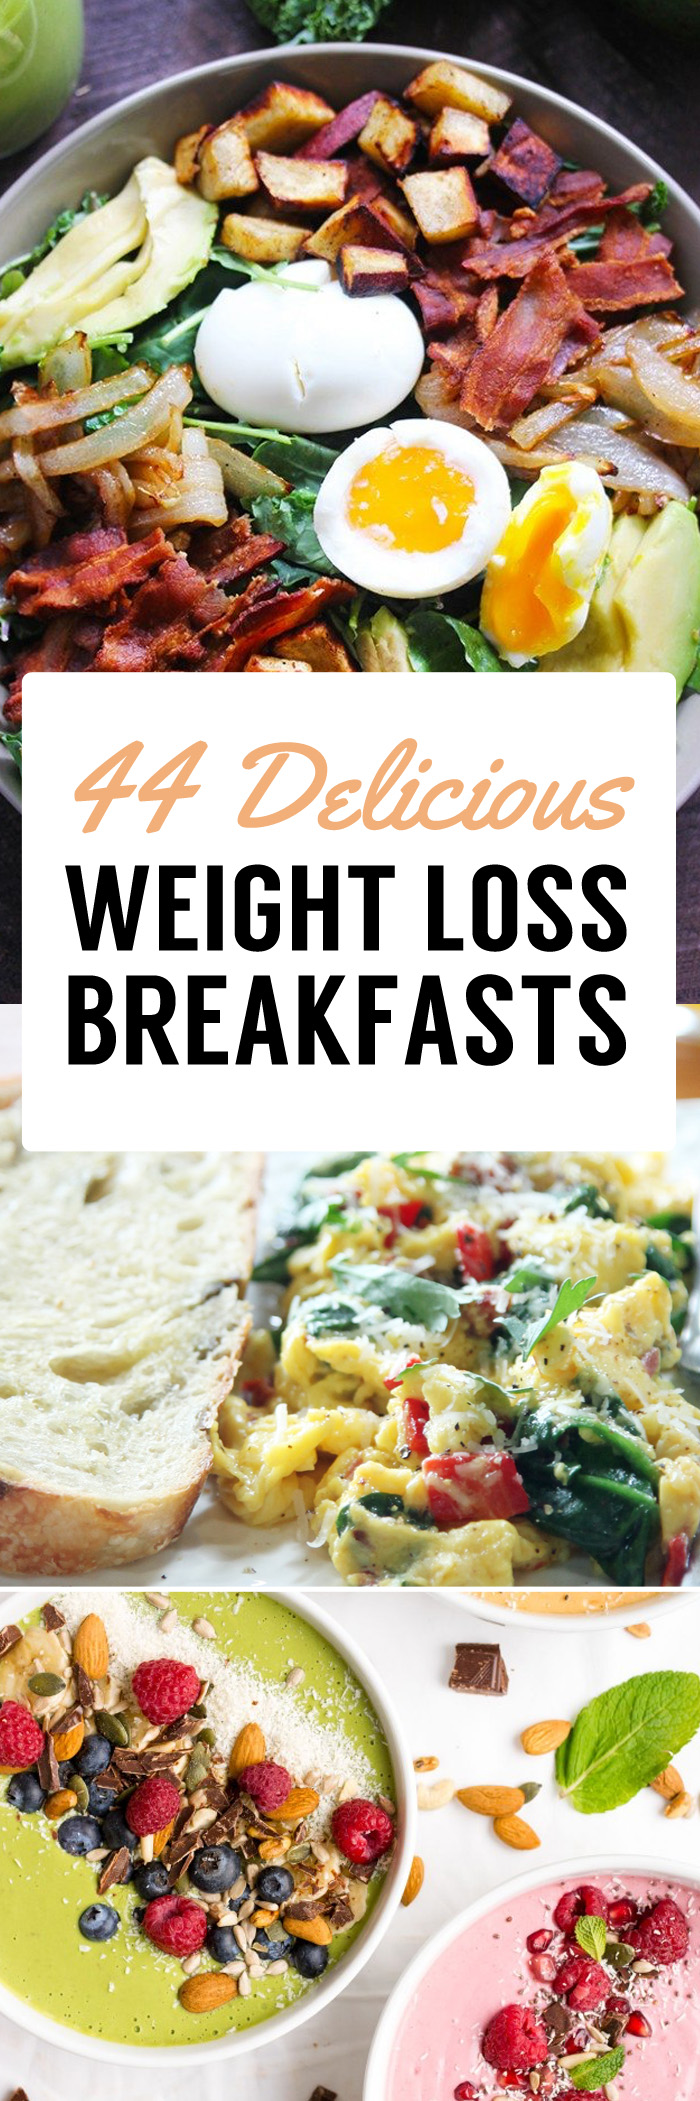 44 Weight Loss Breakfast Recipes To Jumpstart Your Fat Burning Day Trimmedandtoned